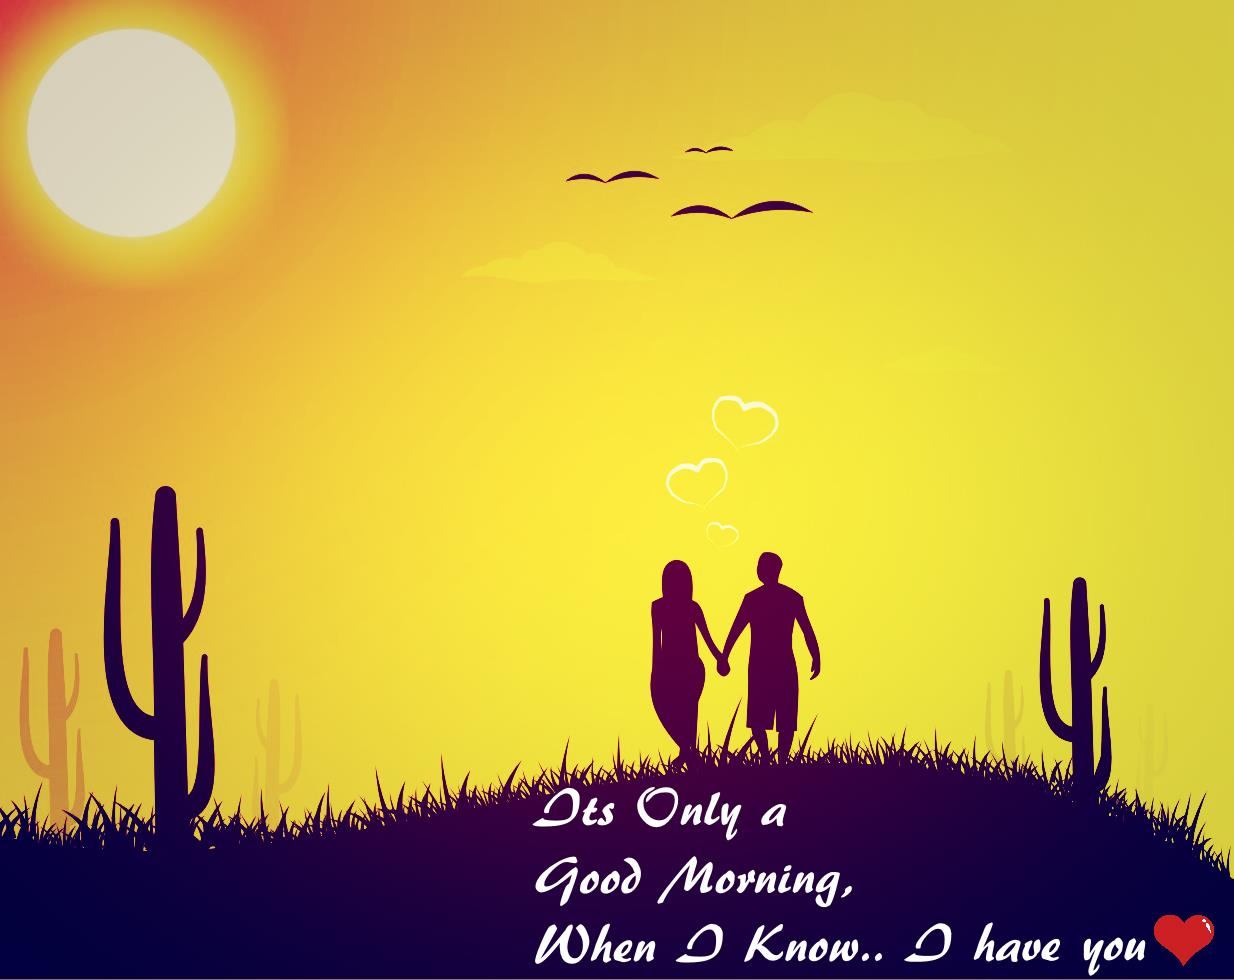 Good Morning Love Wallpaper Quotes : Good Morning Wallpapers Free Download